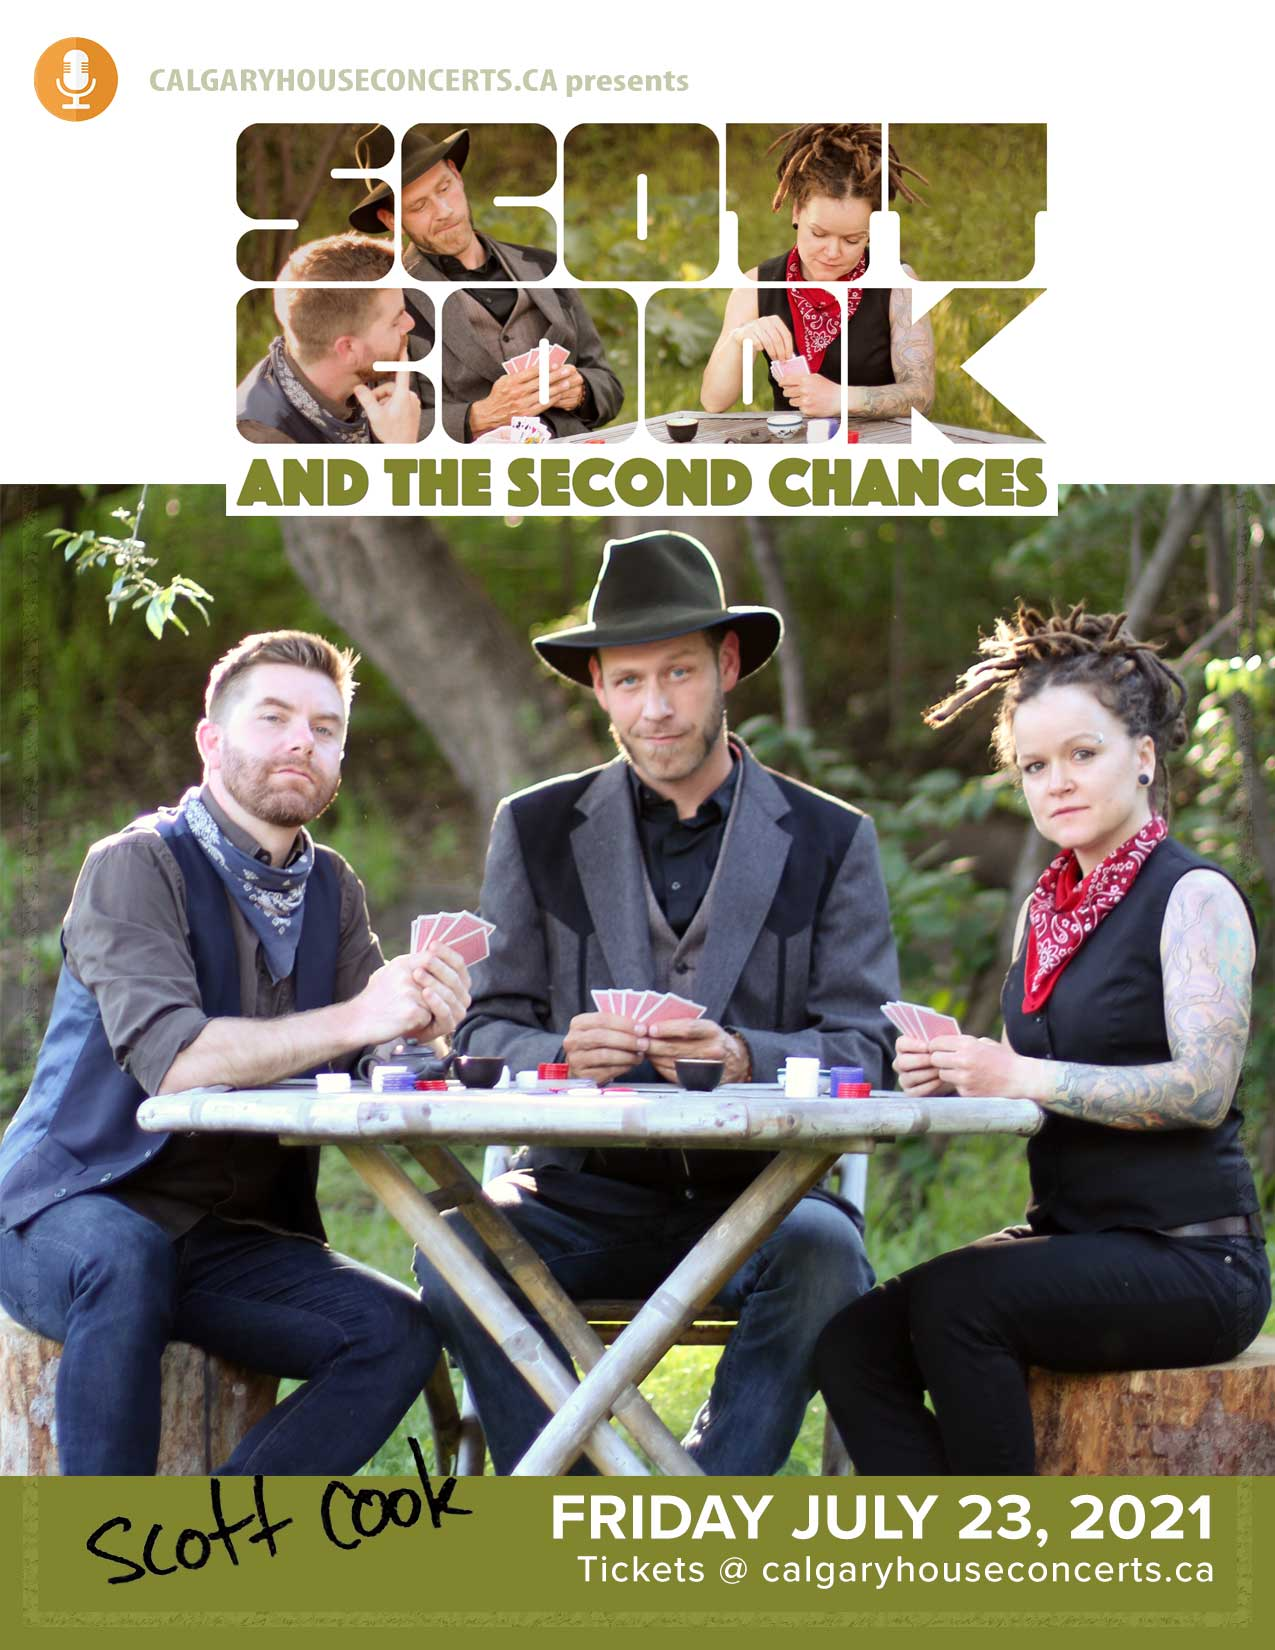 Scott Cook and the Second Chances